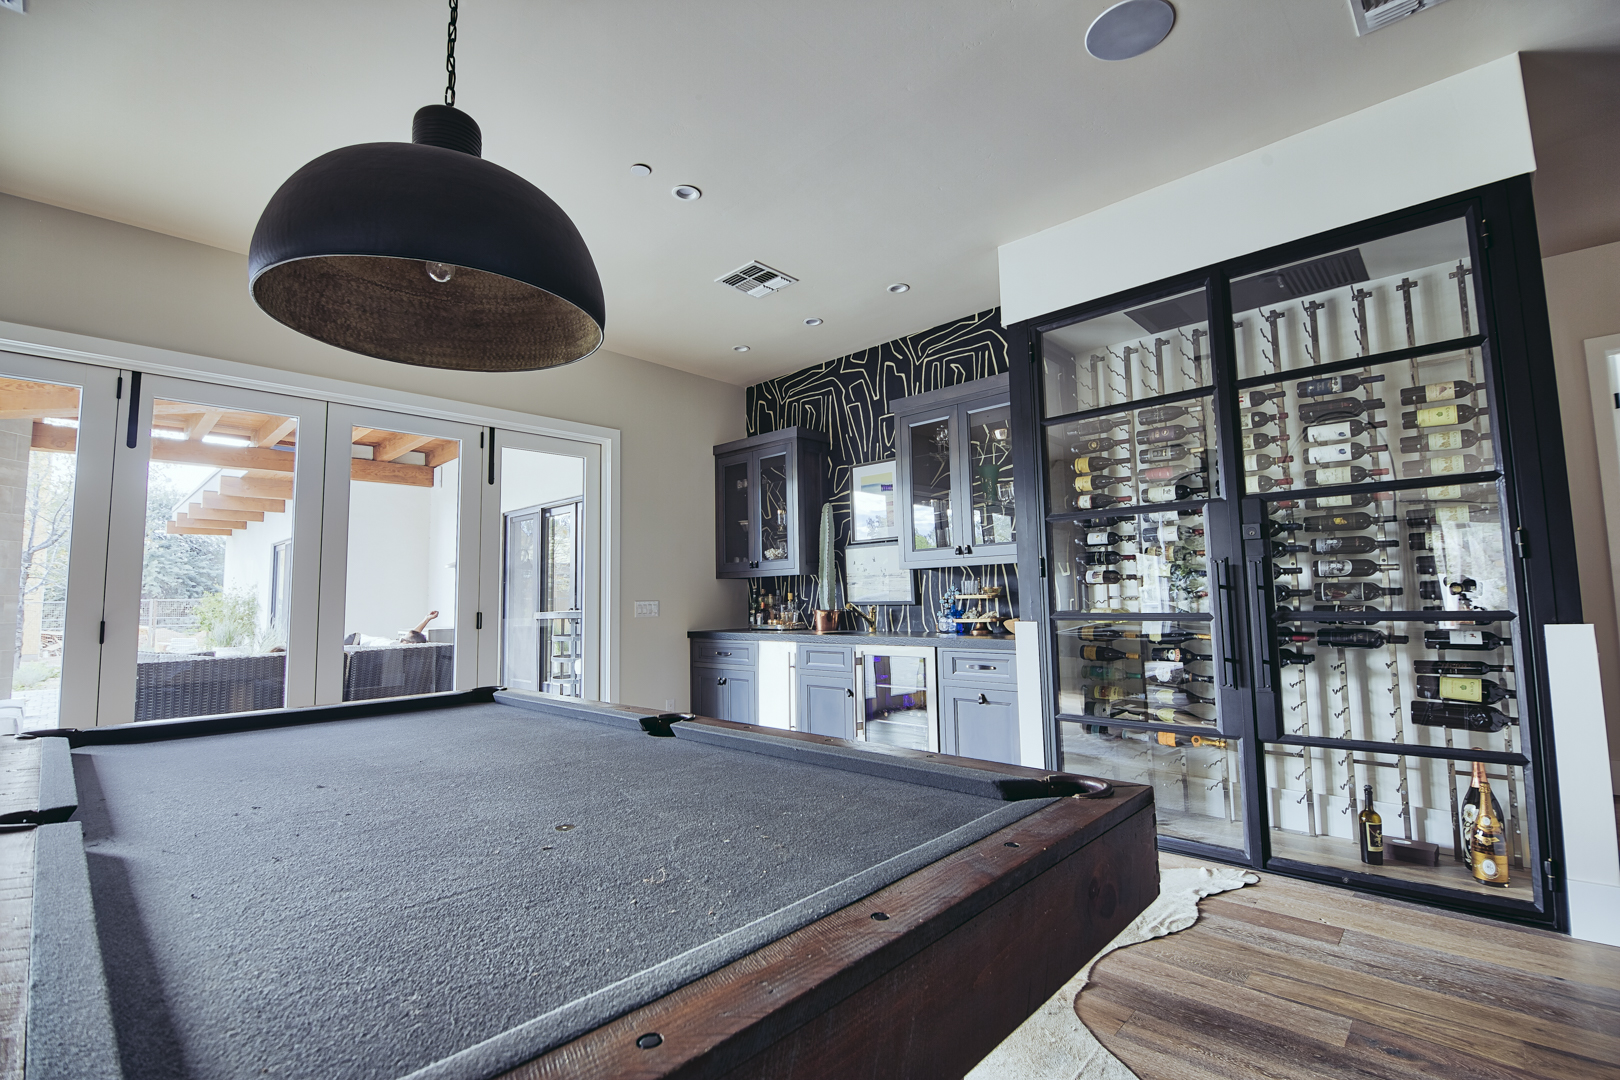 Bungalow Furniture & Accessories - Scottsdale, AZ - Bar & Pool Table